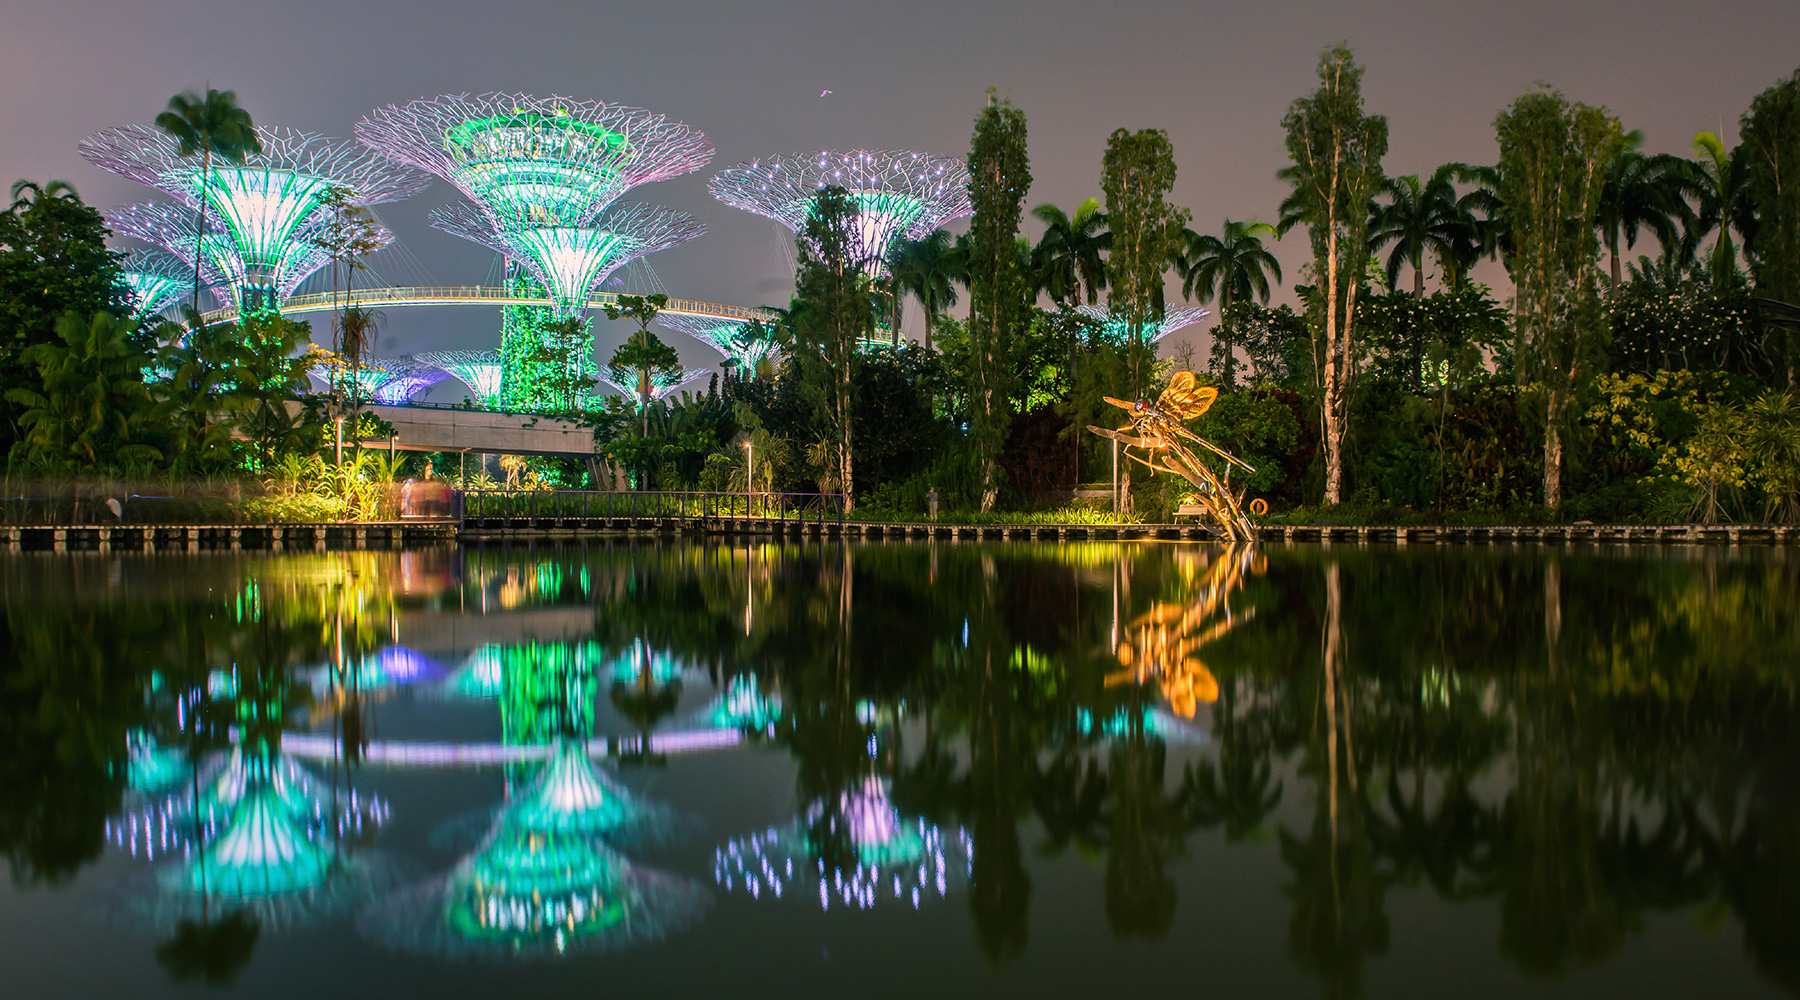 The Botanical Gardens illuminated at night in Singapore.